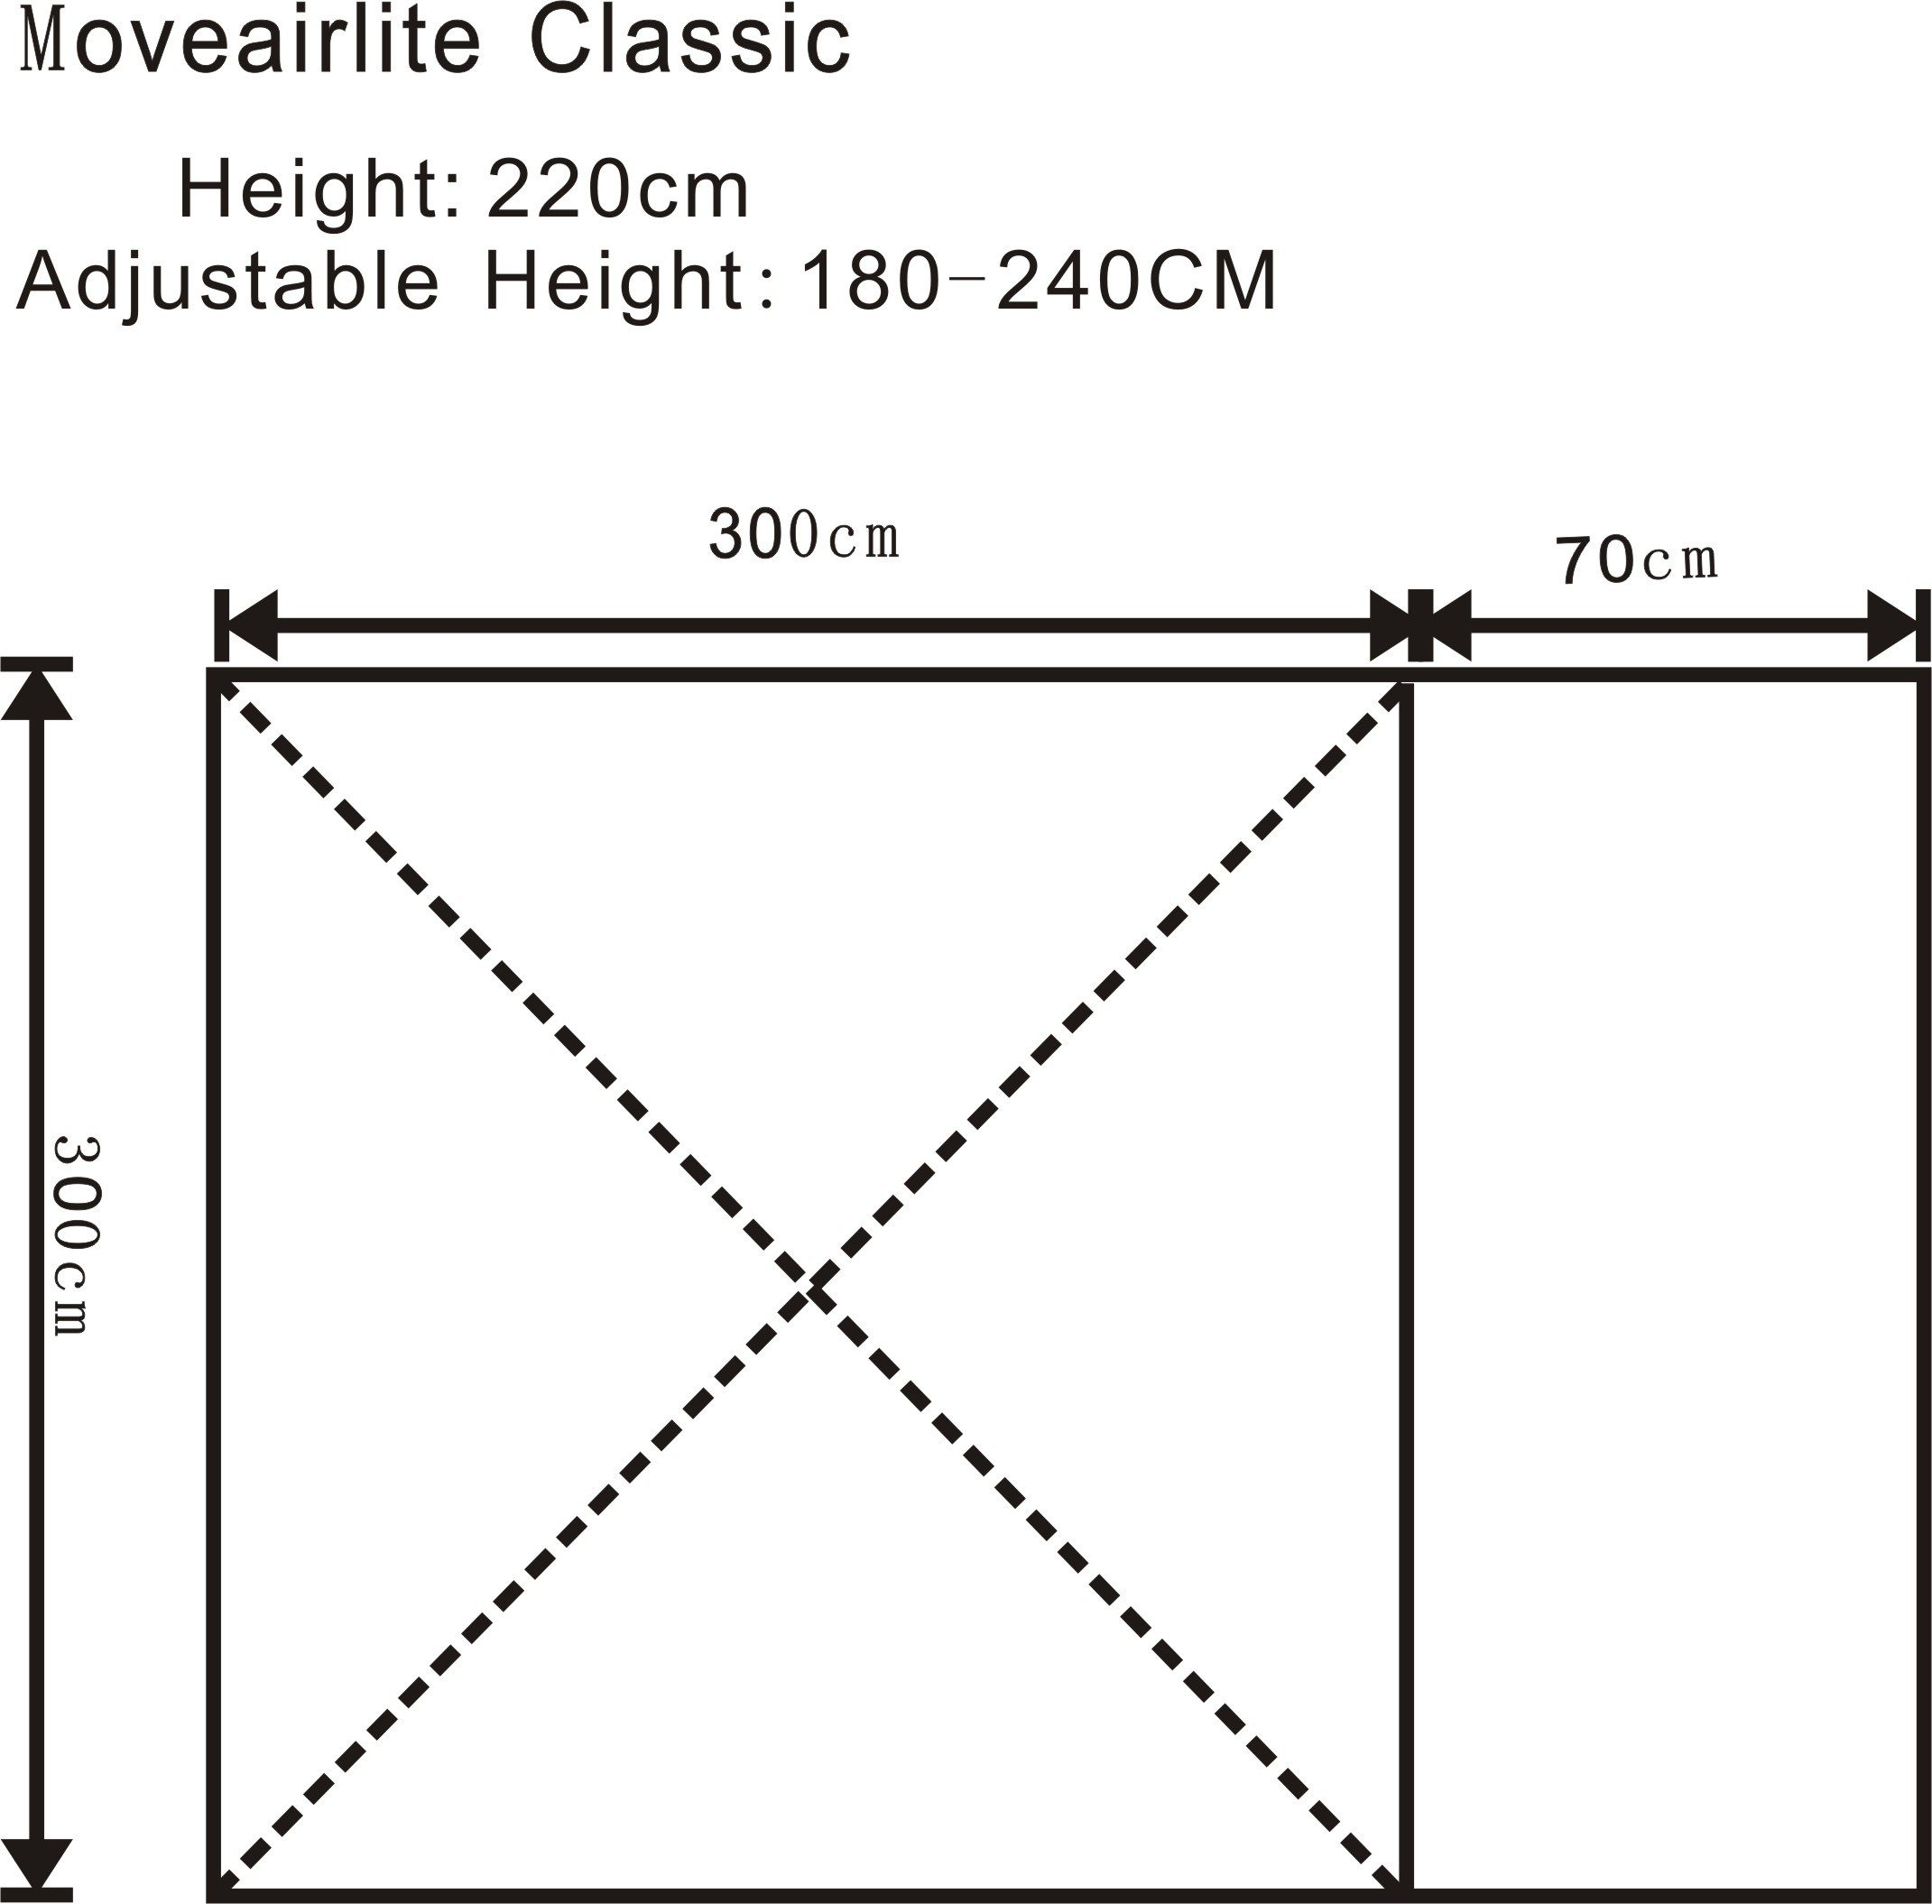 Moveairlite Classic